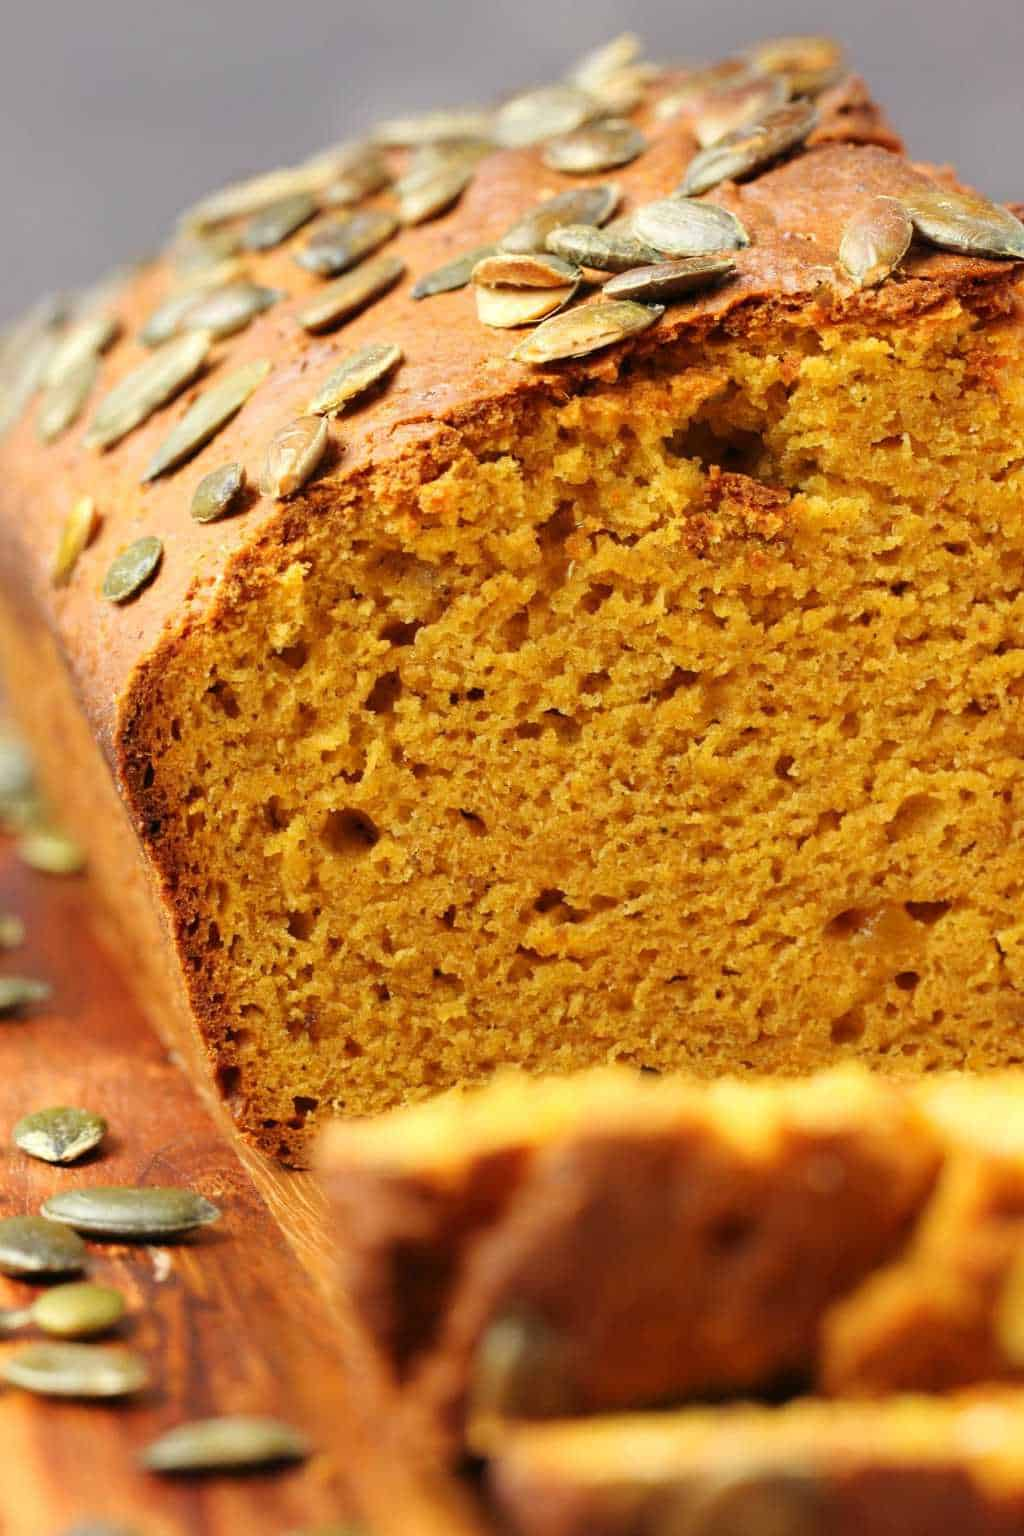 Sliced vegan pumpkin bread on a wooden board.